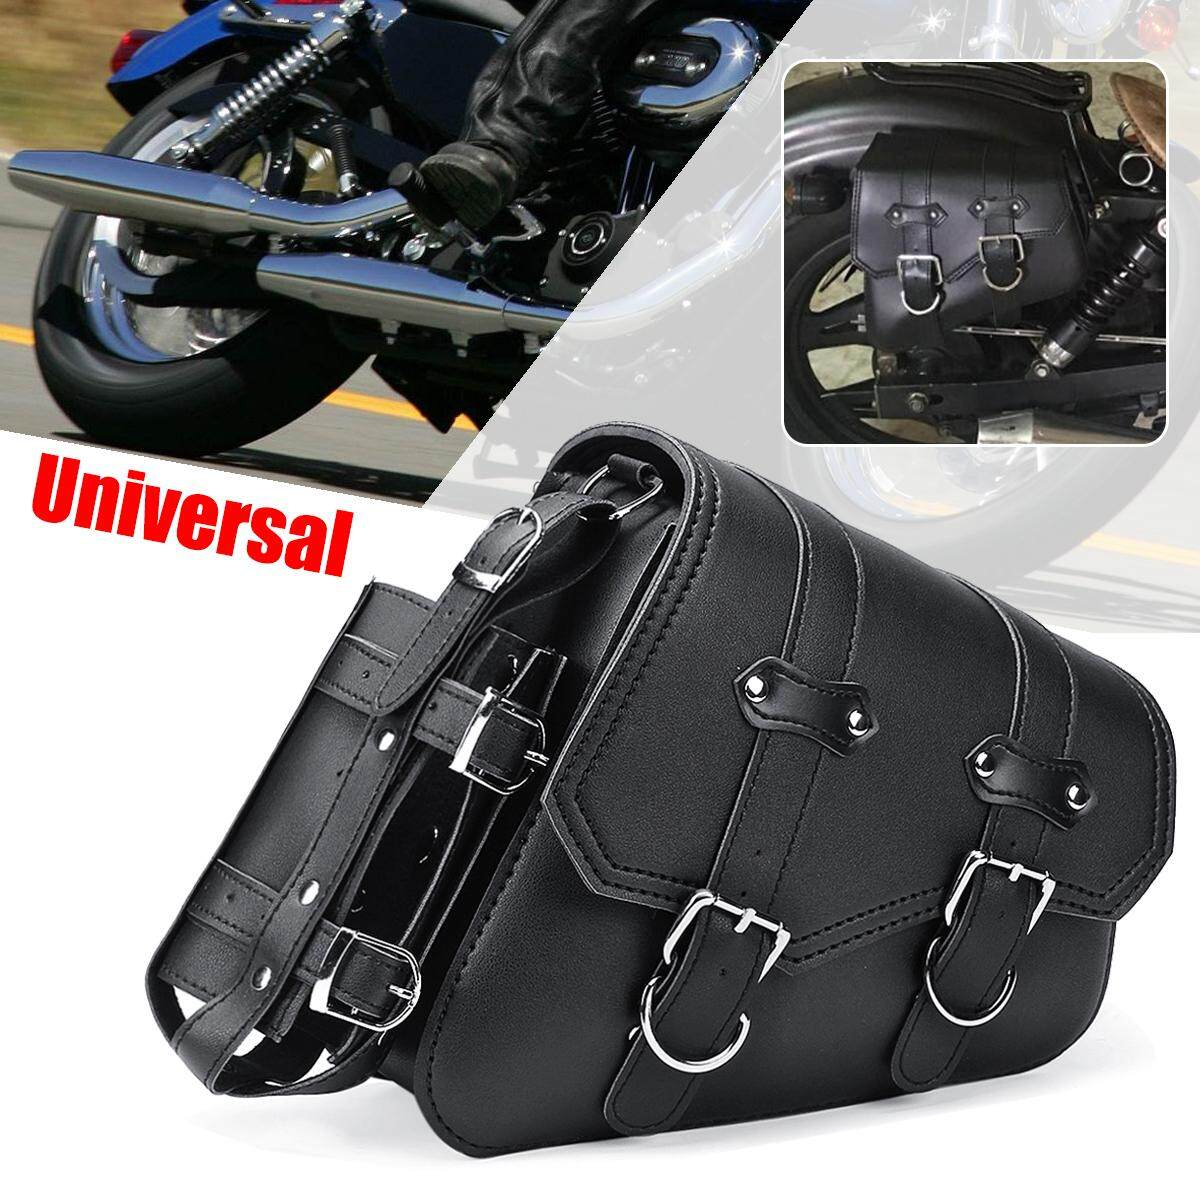 1 Pcs Universal Motorcycle Saddle Bag Black Leather For Harley Sportster  04-UP RIGHT e96b1953f0